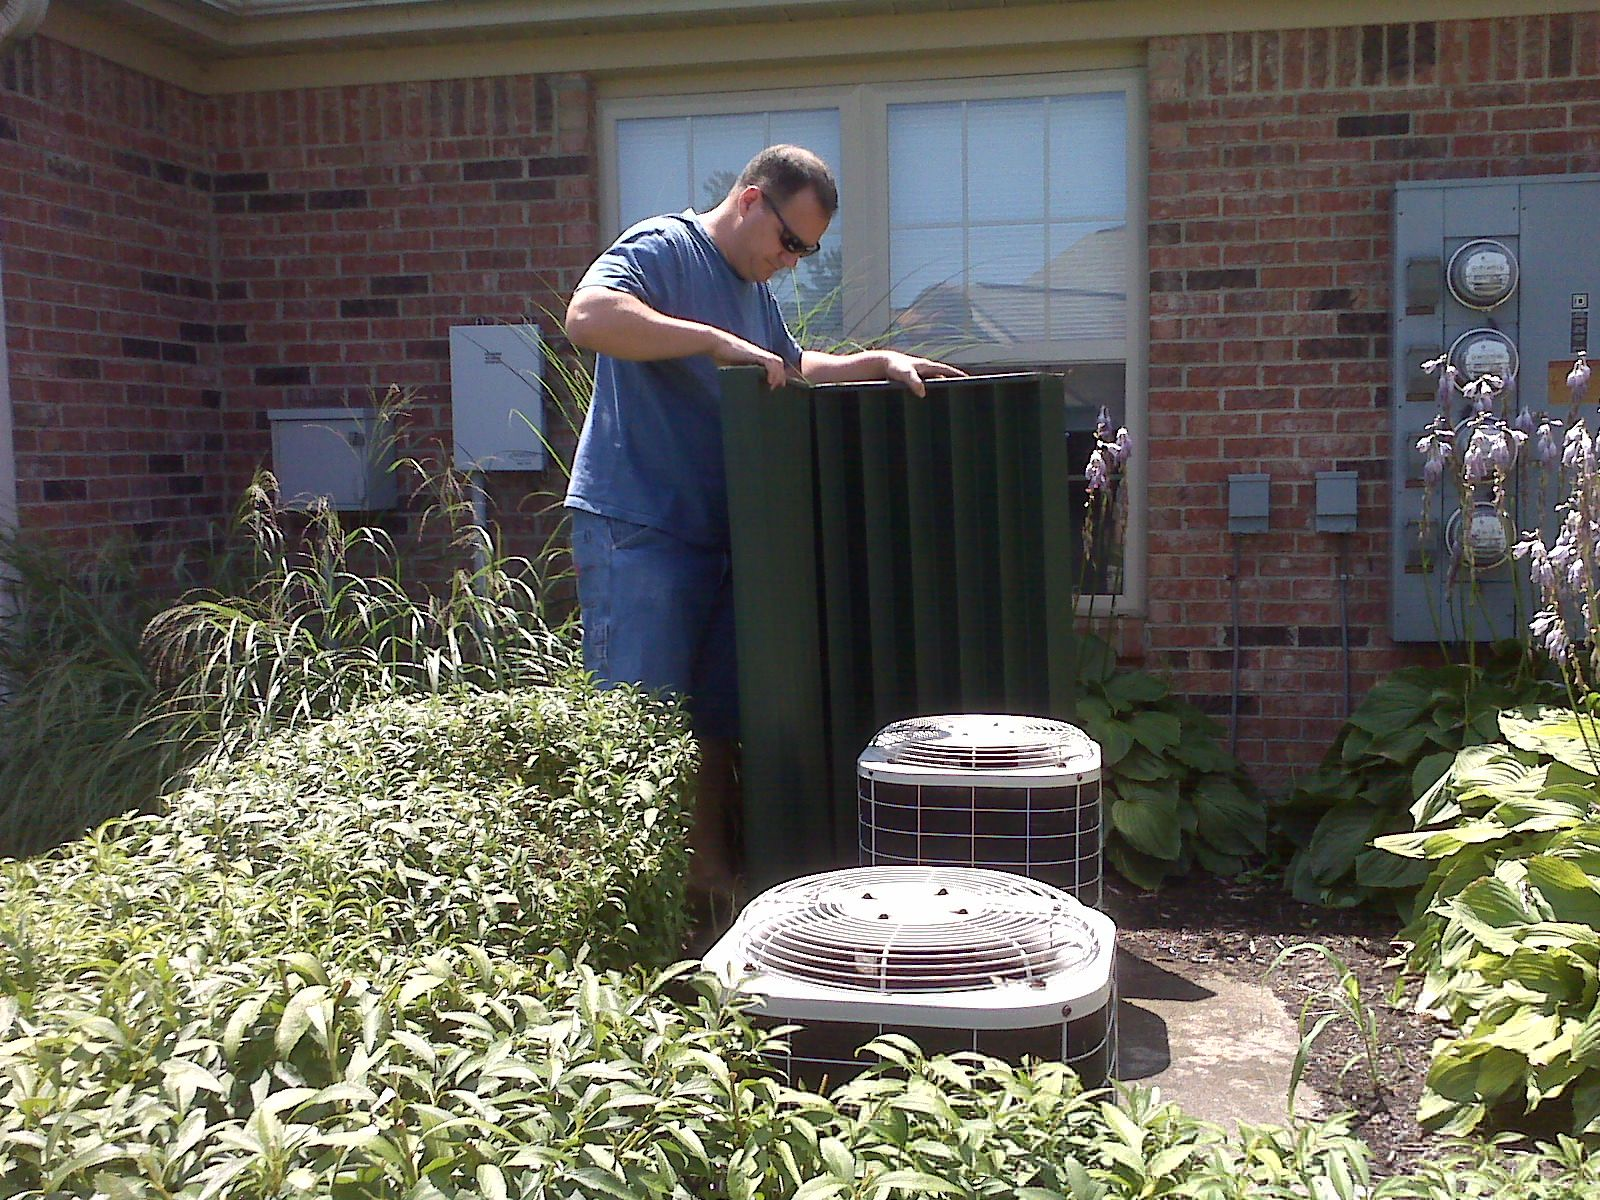 Quiet Fence™ blocks the noise coming from air conditioners